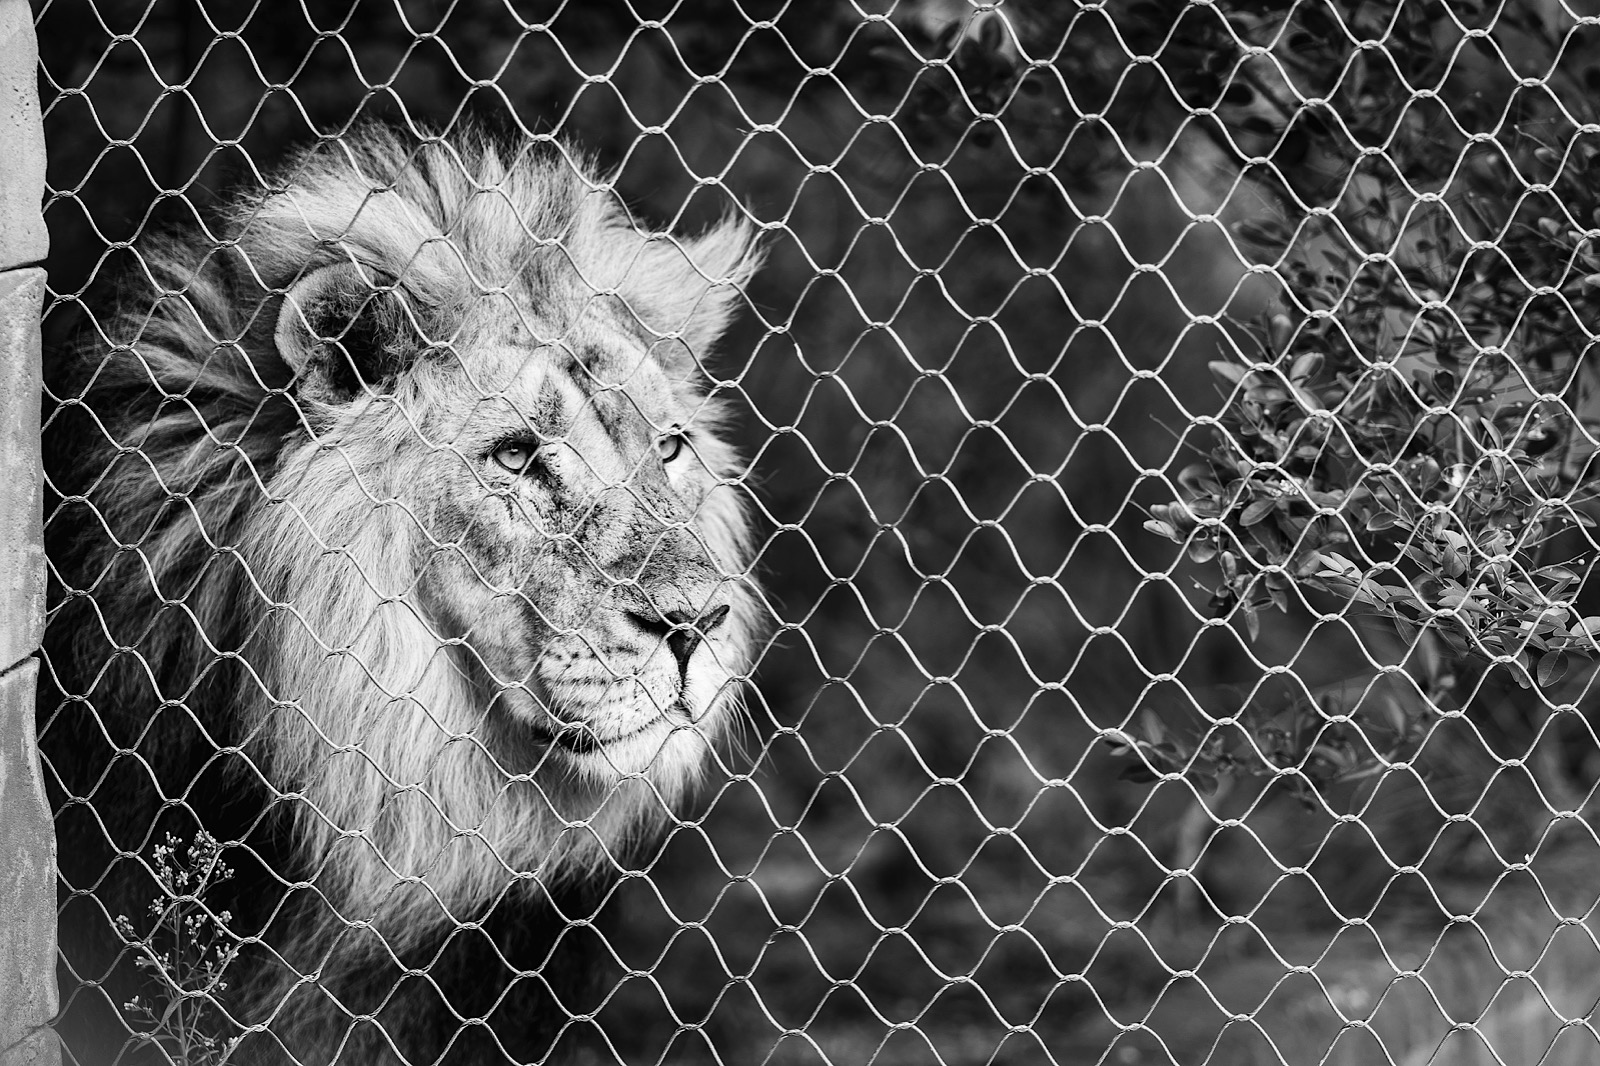 Lion looking through fence